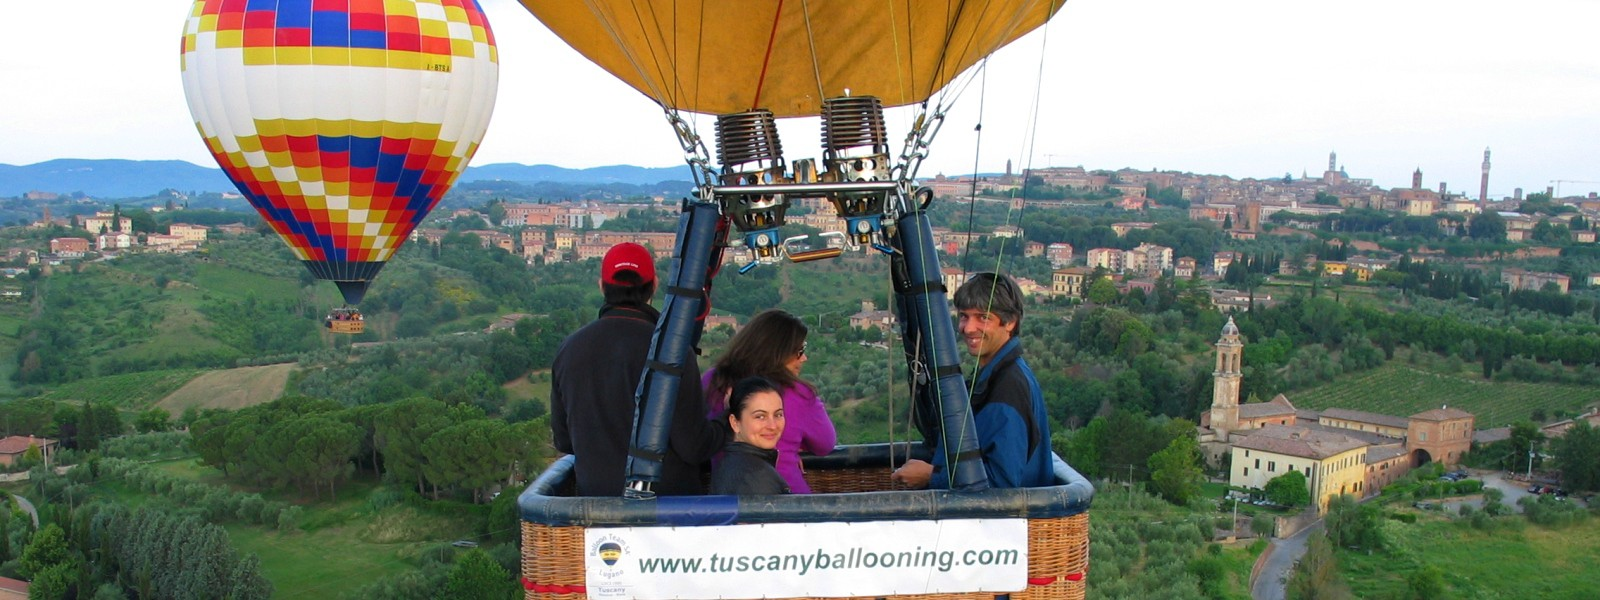 Discover Tuscany by Hot-air balloon